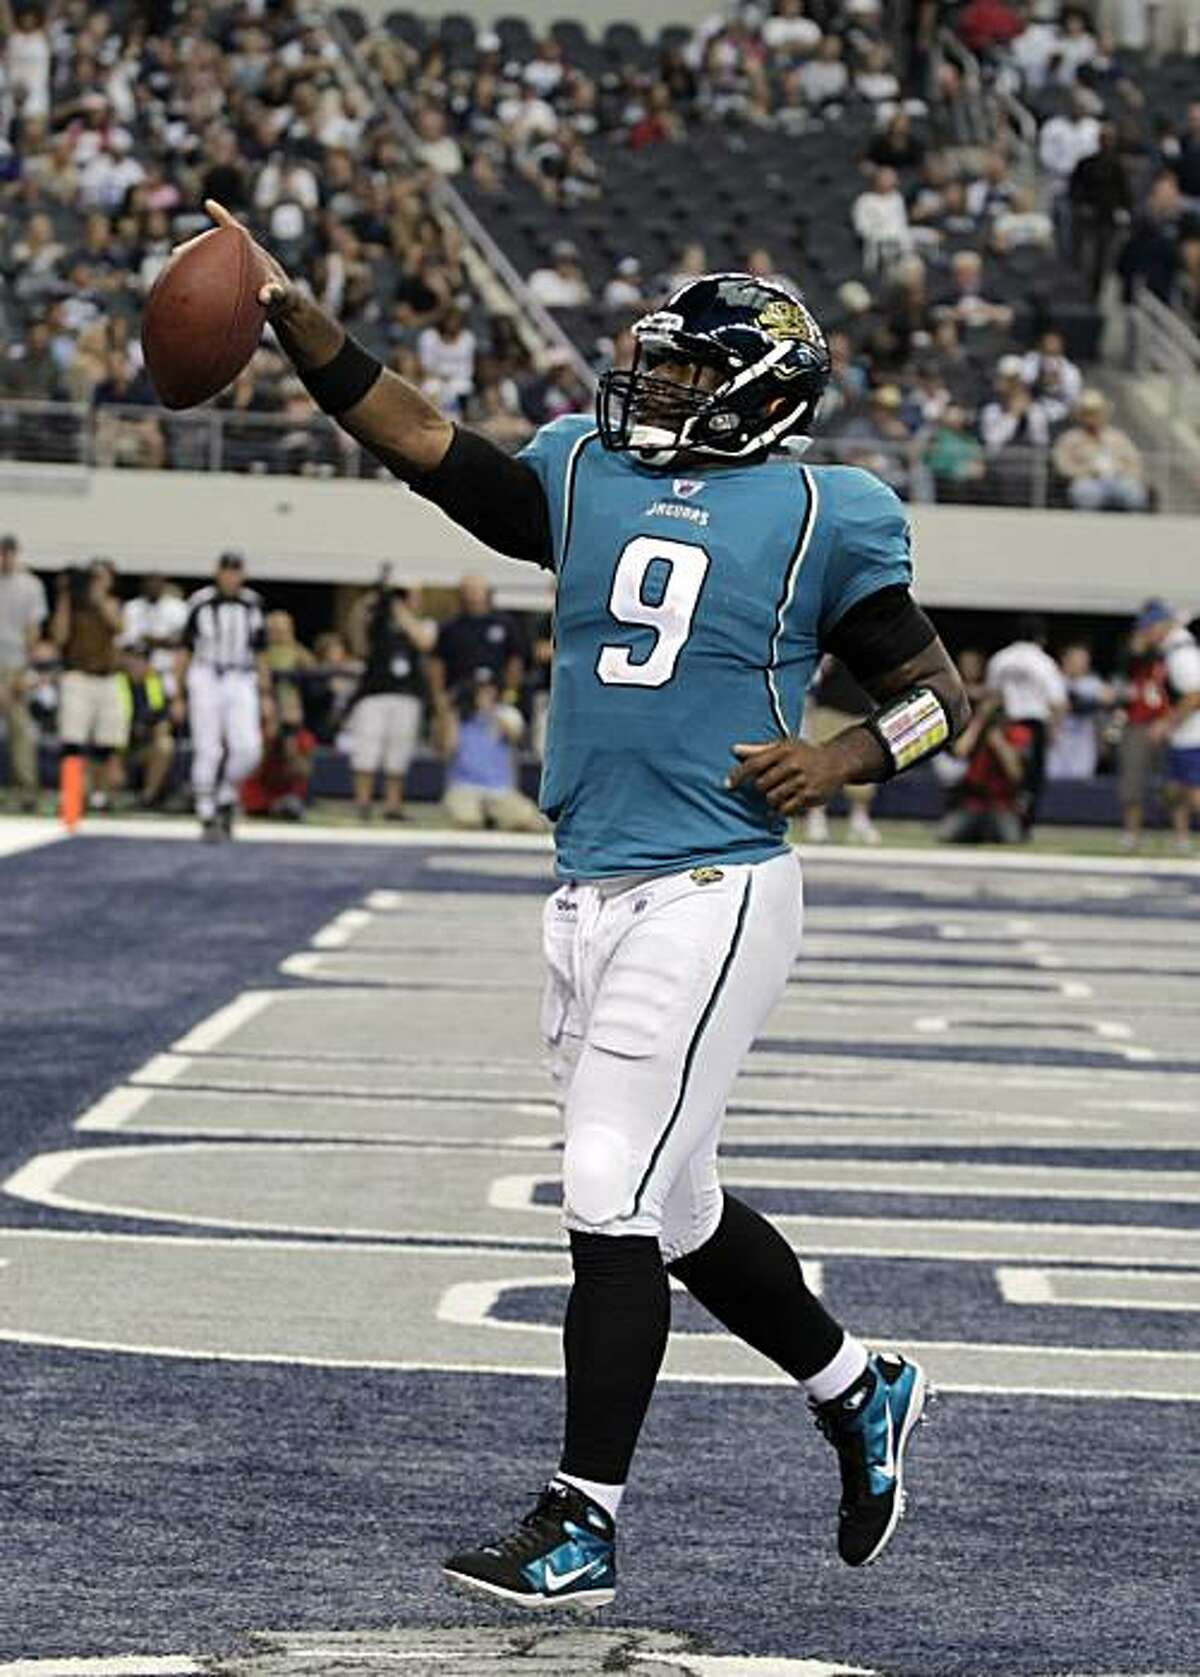 Jacksonville Jaguars quarterback David Garrard (9) celebrates after scoring a touchdown in the fourth quarter during an NFL football game against the Dallas Cowboys in Dallas, Sunday, Oct. 31, 2010.